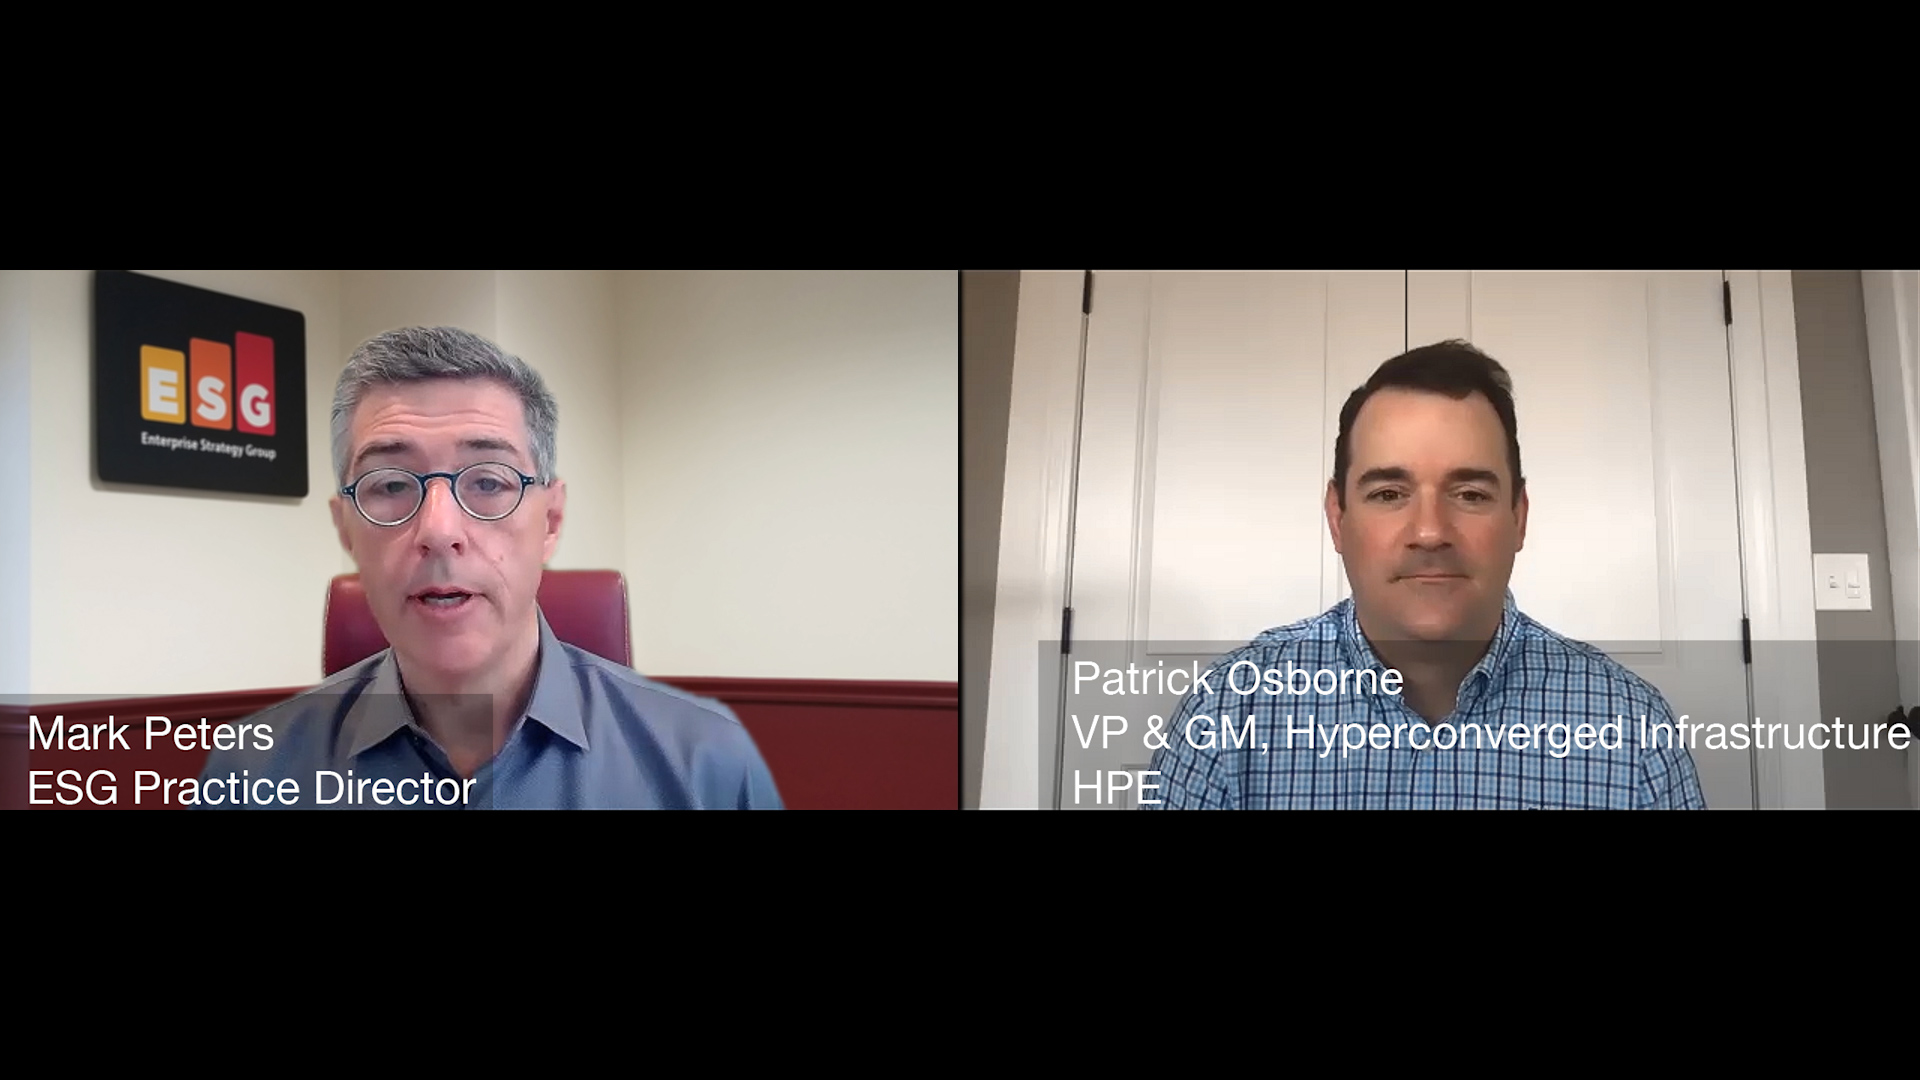 Marketing in Challenging Times - in Conversation with Pat Osborne of HPE (Video)